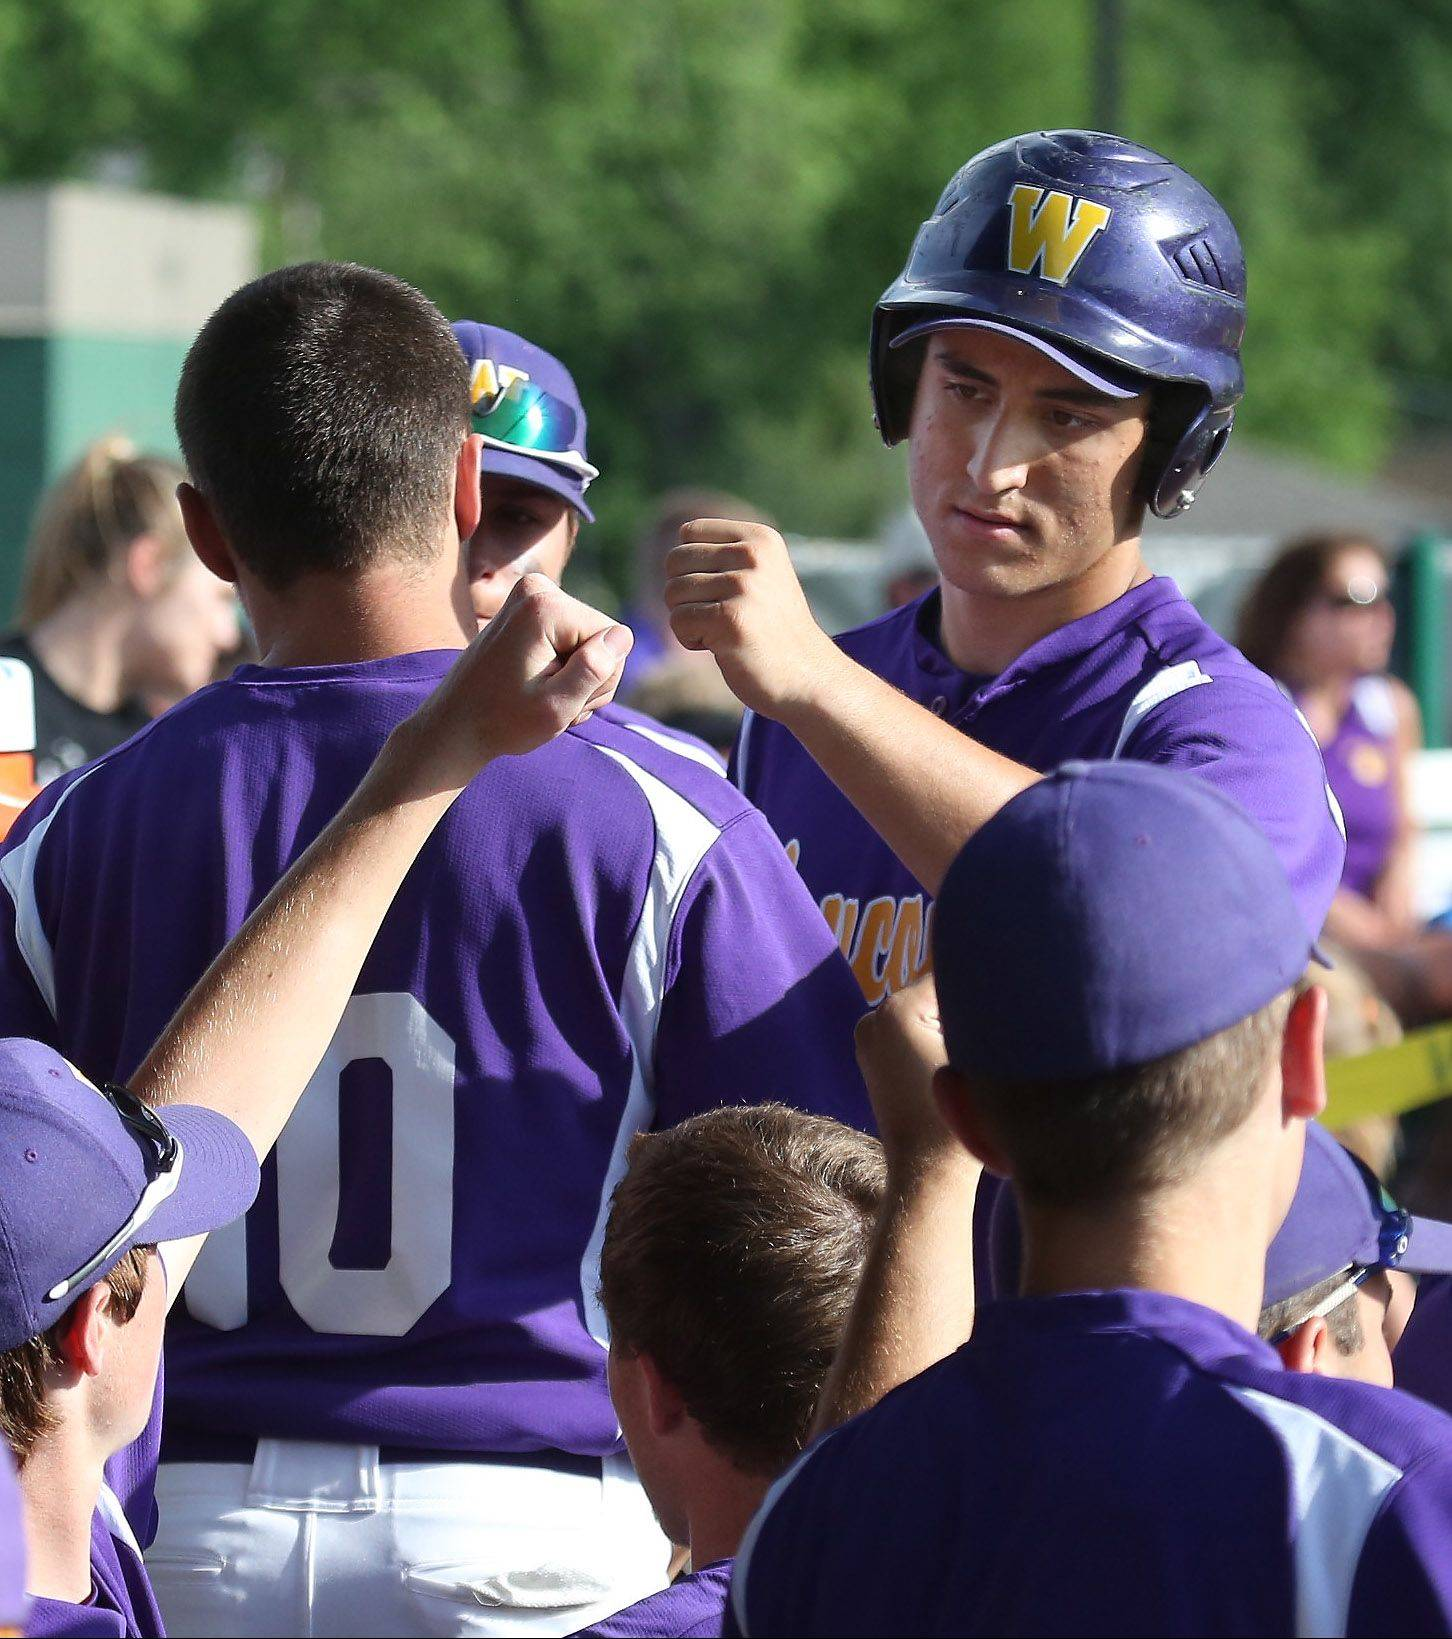 Wauconda�s Joe Lovelle is congratulated by teammates after scoring the first run in Class 3A sectional semifinal play Thursday against Richmond-Burton at Grayslake Central. Wauconda won 9-1.